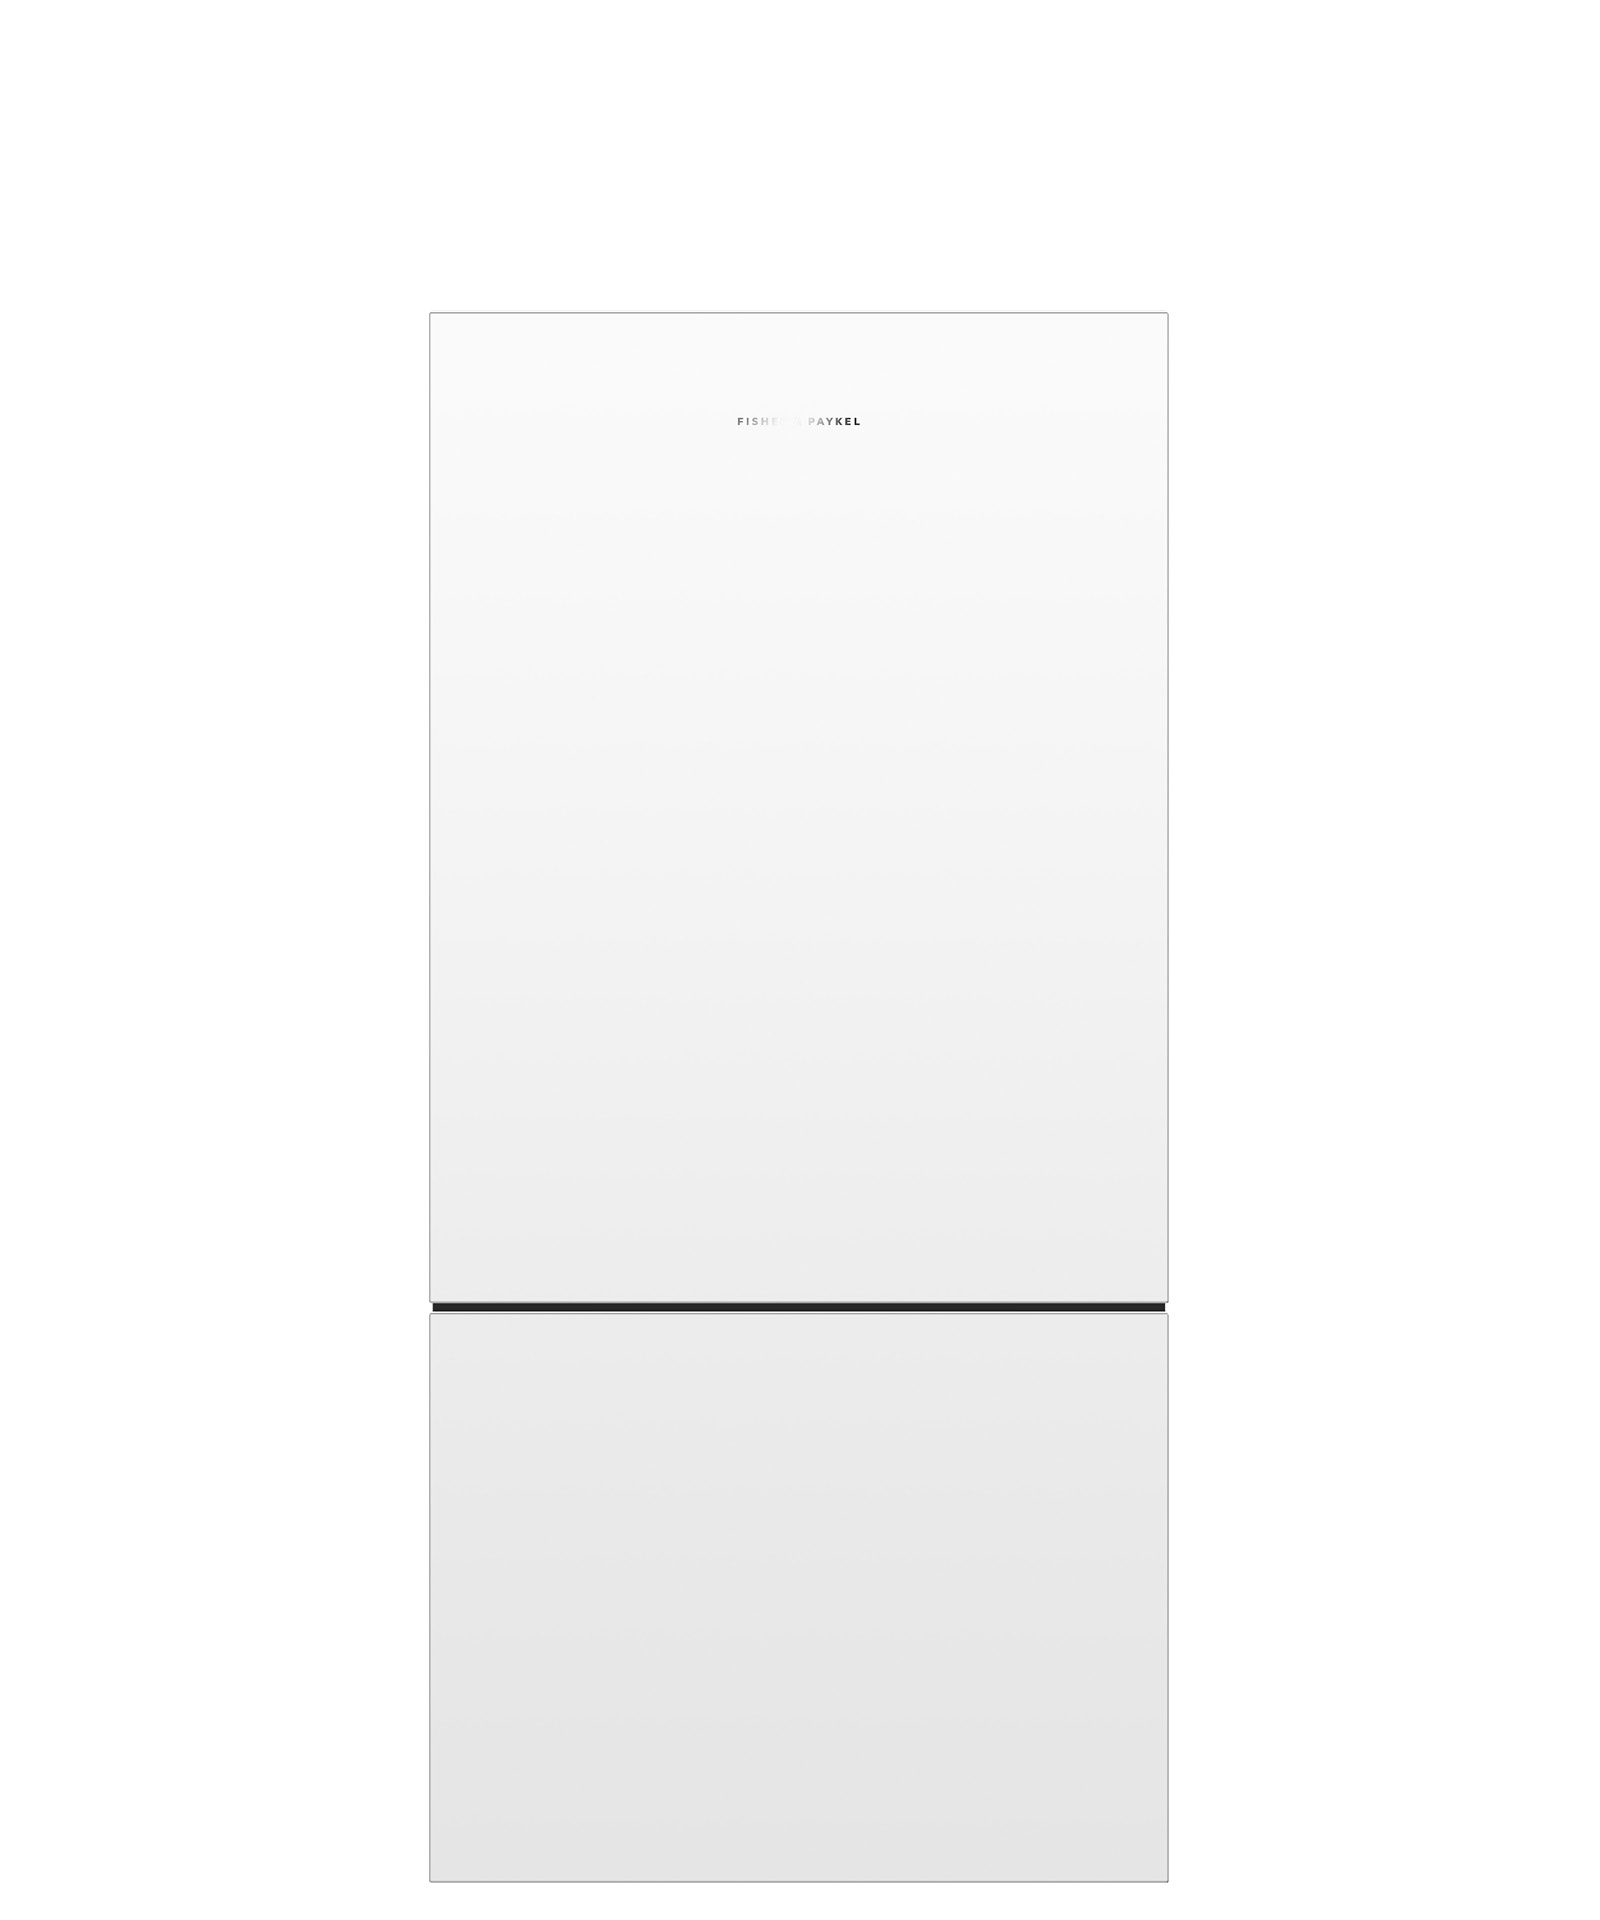 Fisher And Paykel Rf170blpw6 N Counter Depth Refrigerator 17 5 Cu Ft Rf170blpw6 N Dormont Appliance